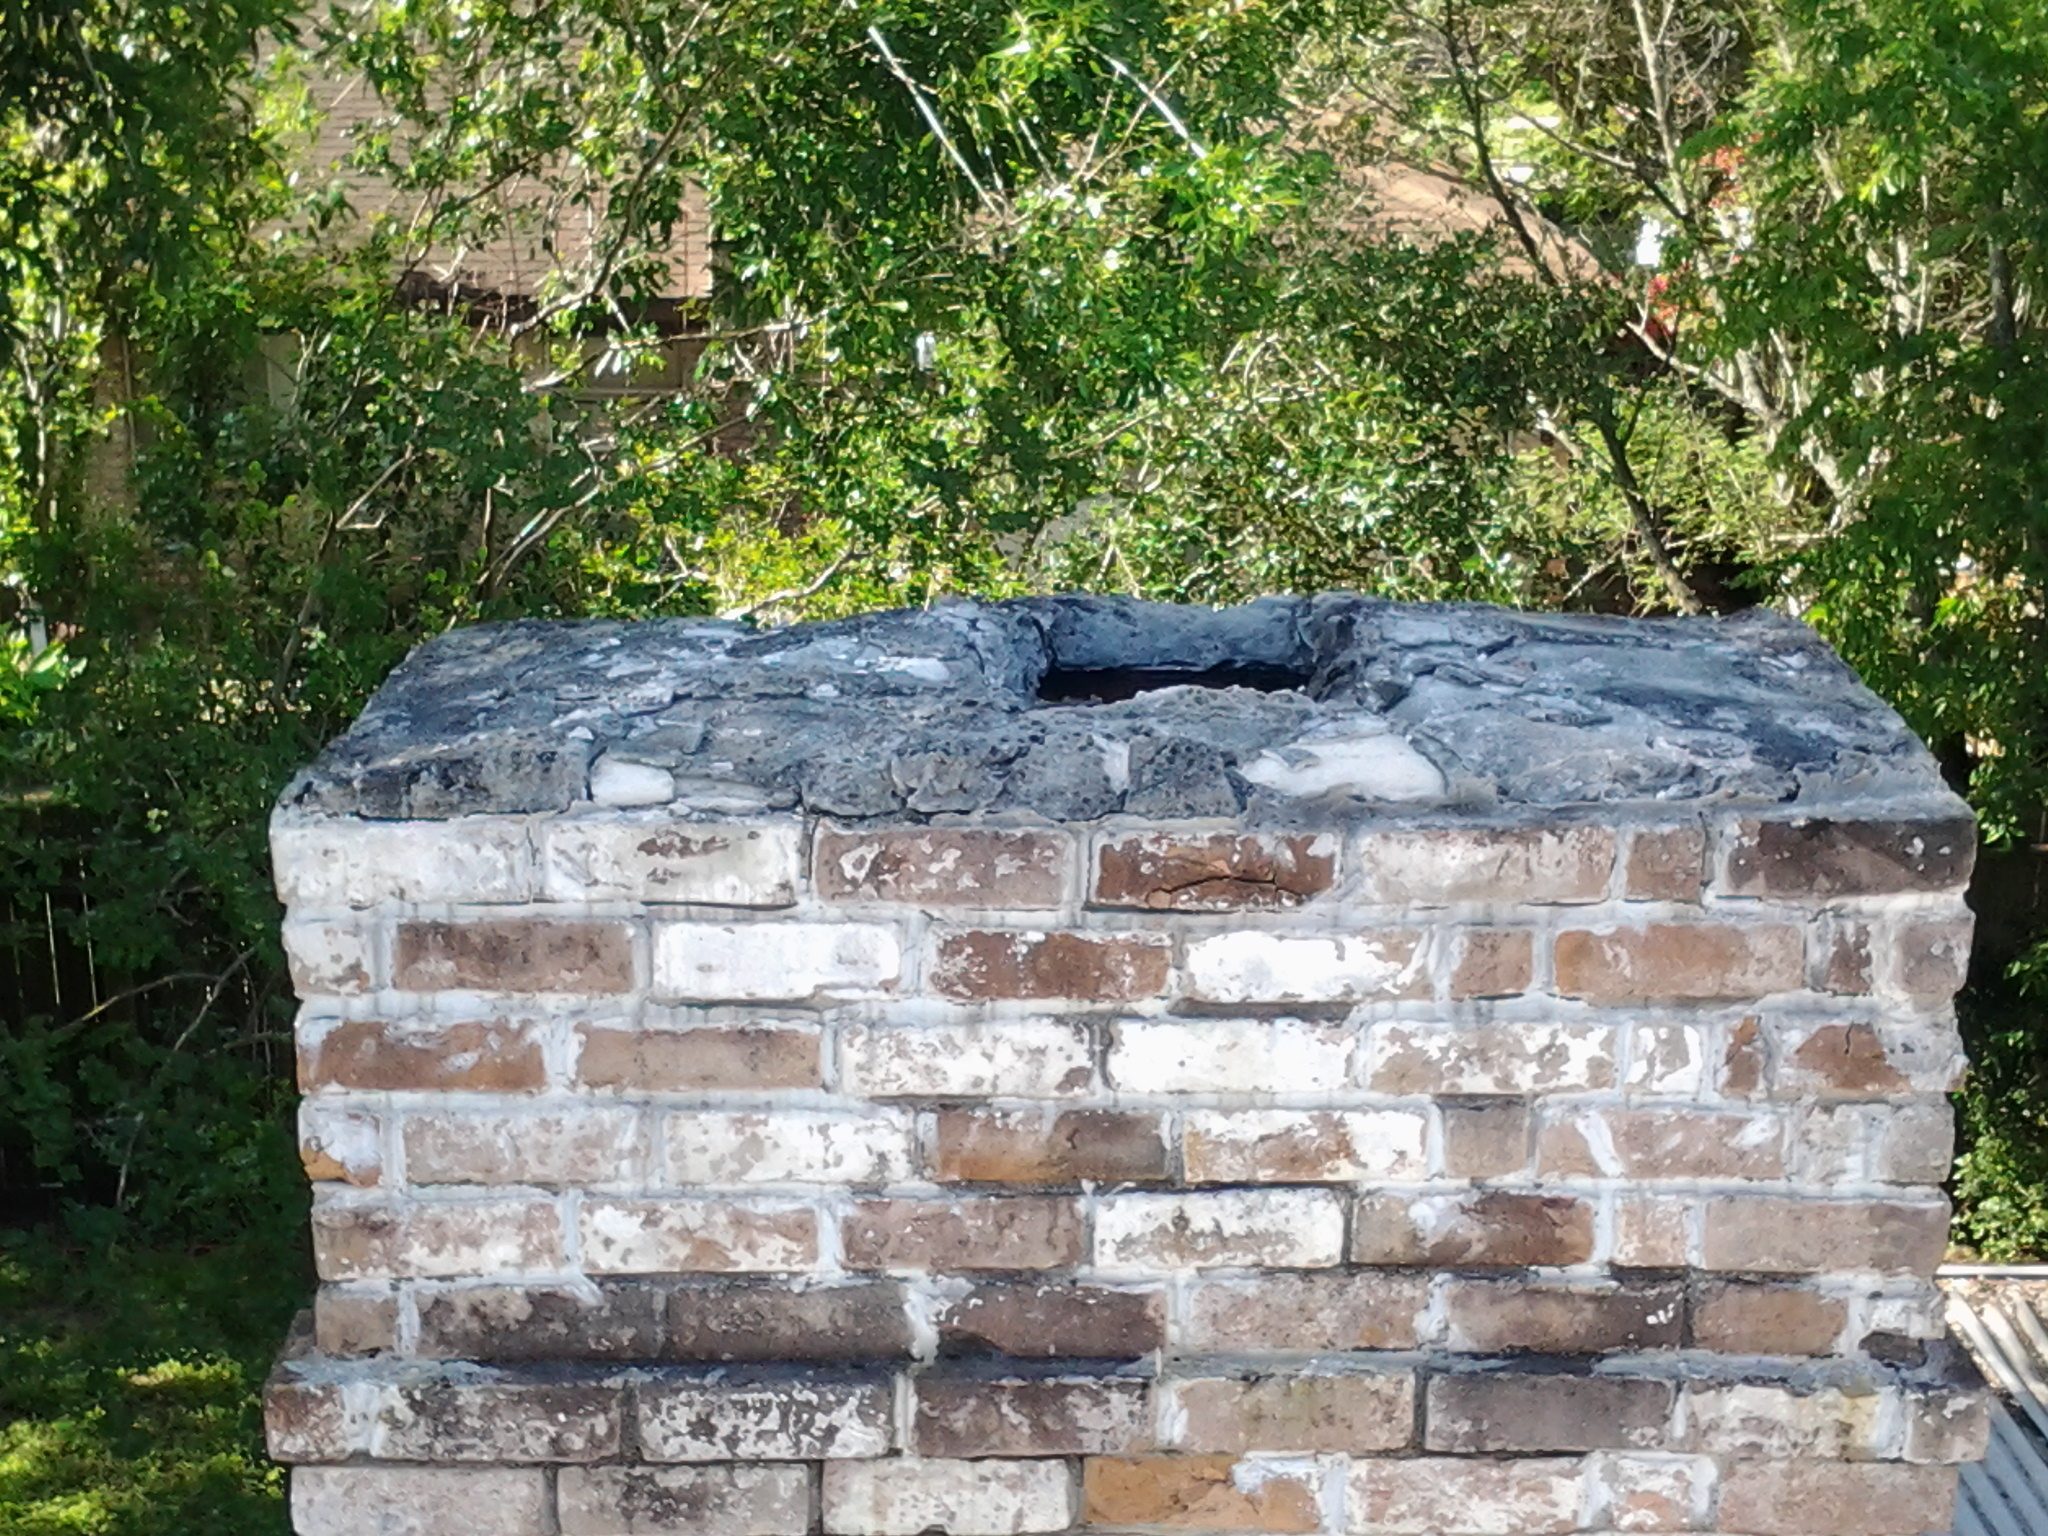 Dragon's Fireplace image 4